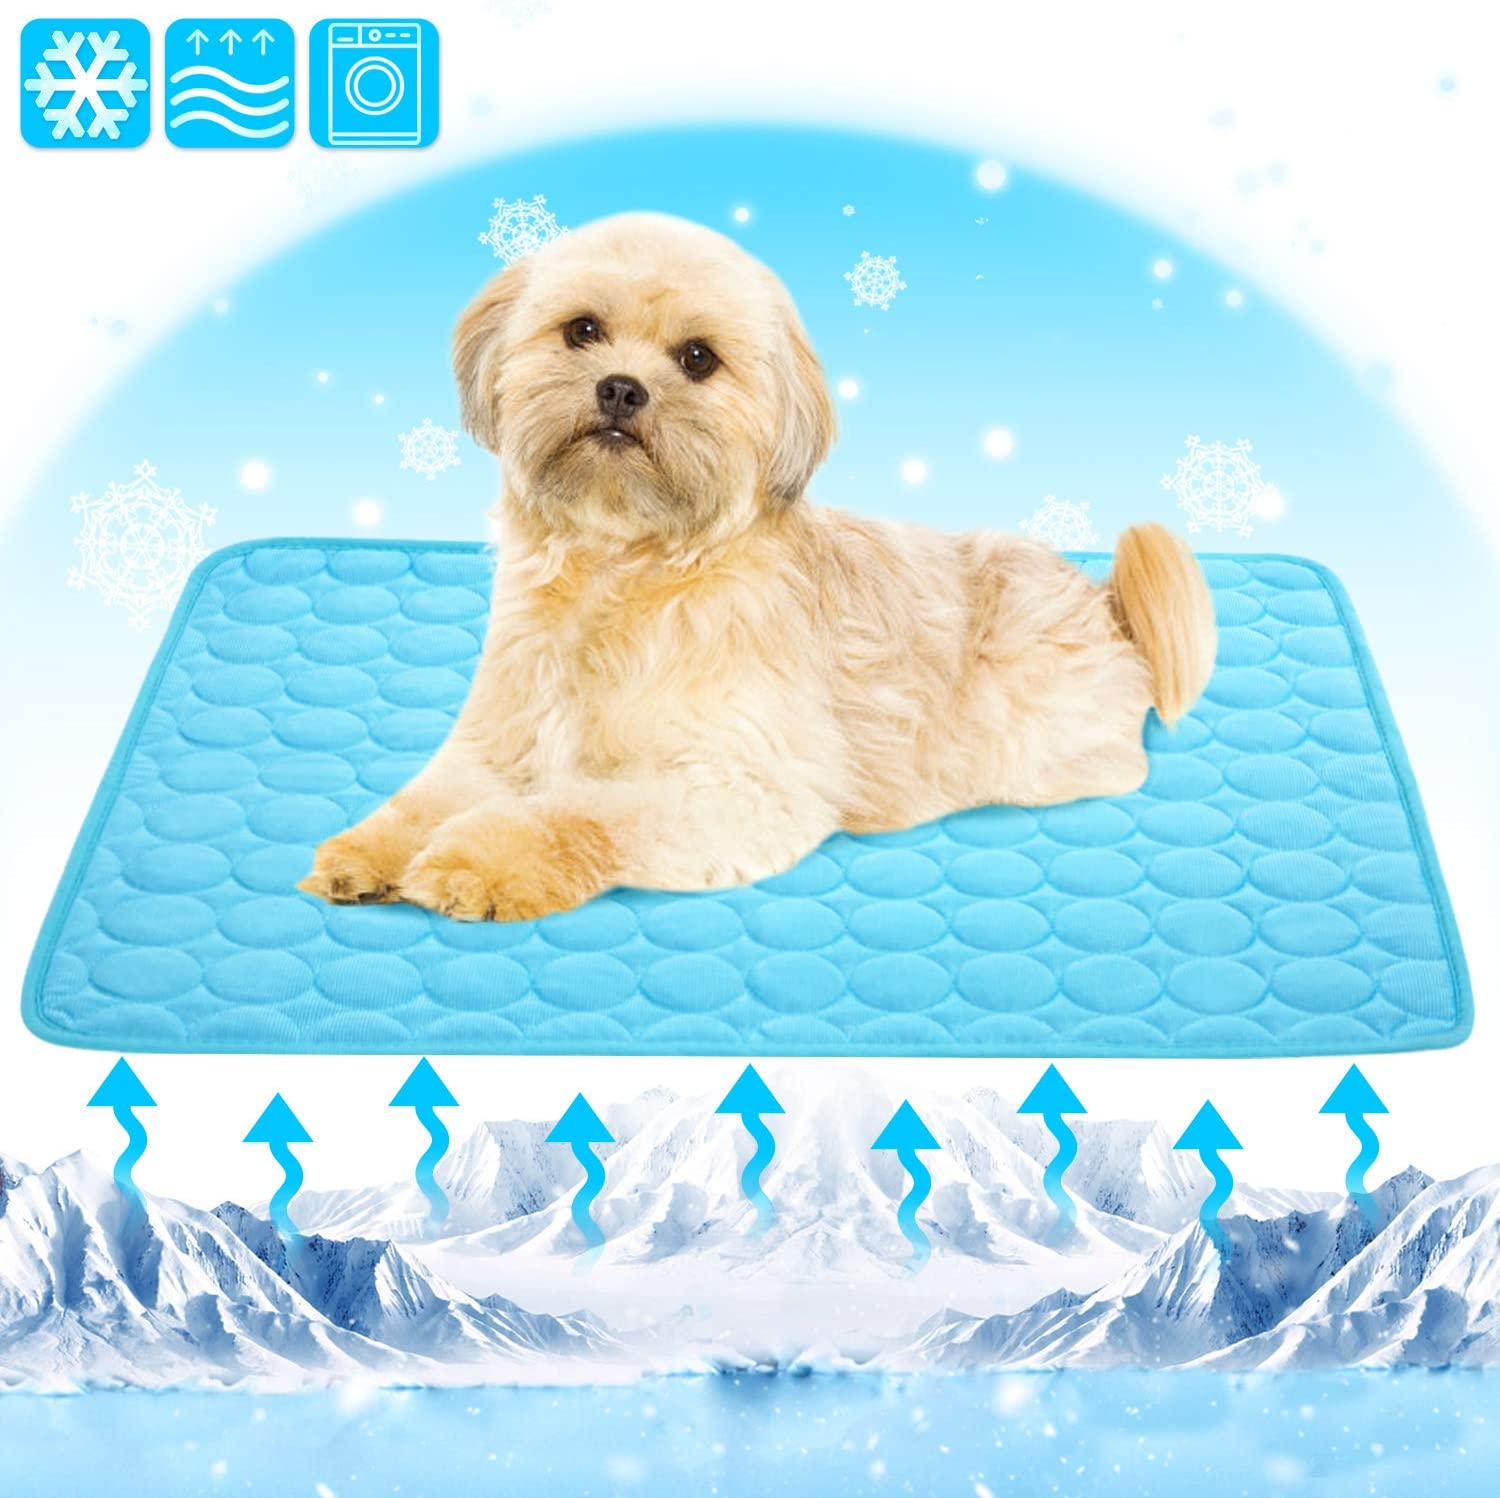 AOFITEE Dog Cooling Mat, Pet Self Cooling Pad for Large Dogs, Washable Breathable Ice Silk Cooling Blanket Sleep Cushion for Kennel, Crate, Dog Cat Bed, Avoid Overheating